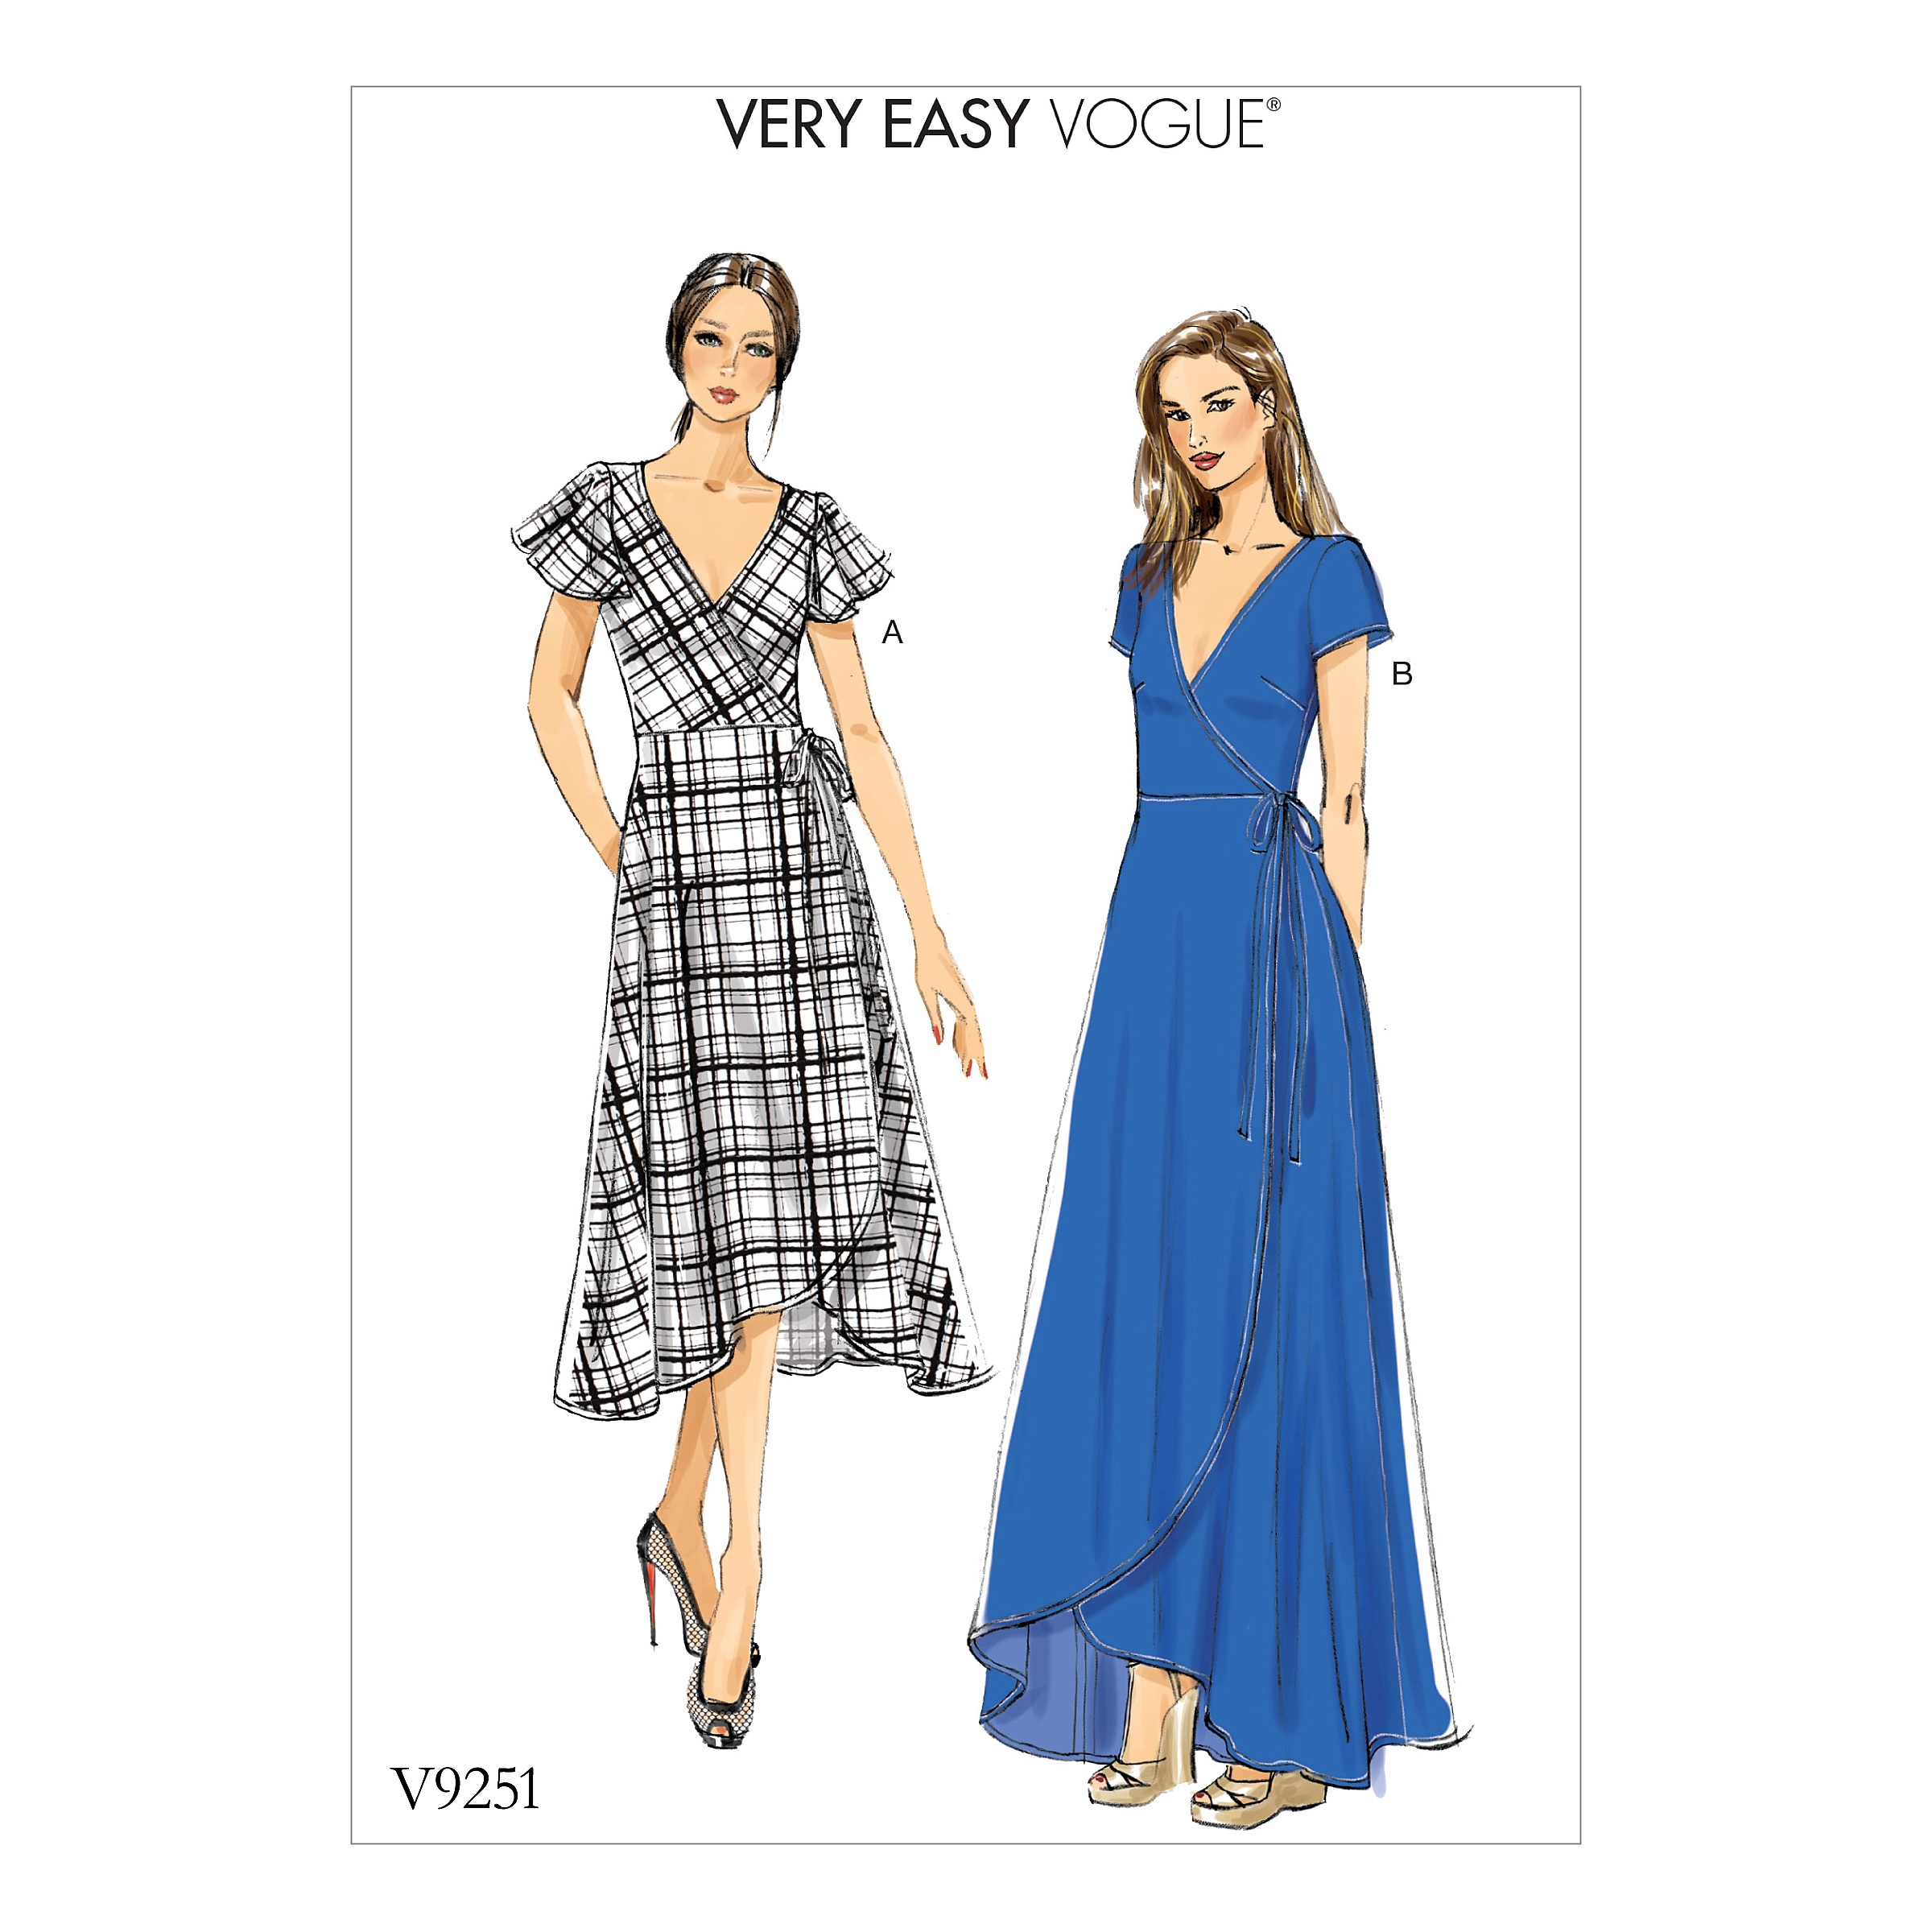 Vogue Patterns Sewing Pattern Misses' Wrap Dresses with Ties, Sleeve and Length Variations-16-18-20-22-24